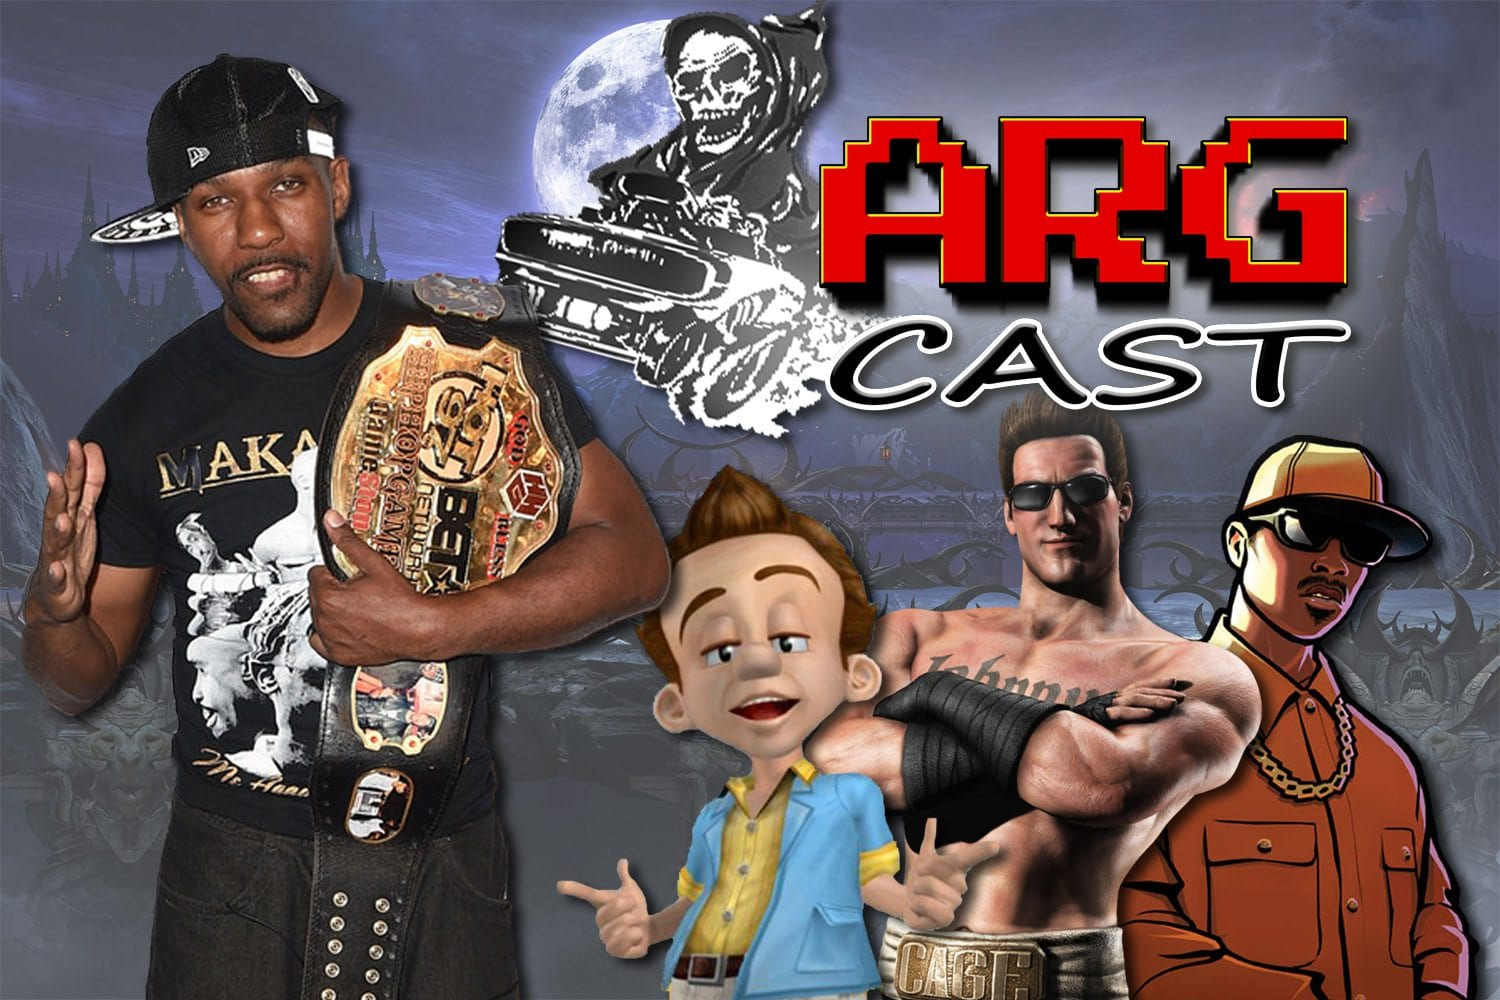 ARGcast #85: Controversial Video Games with HipHopGamer